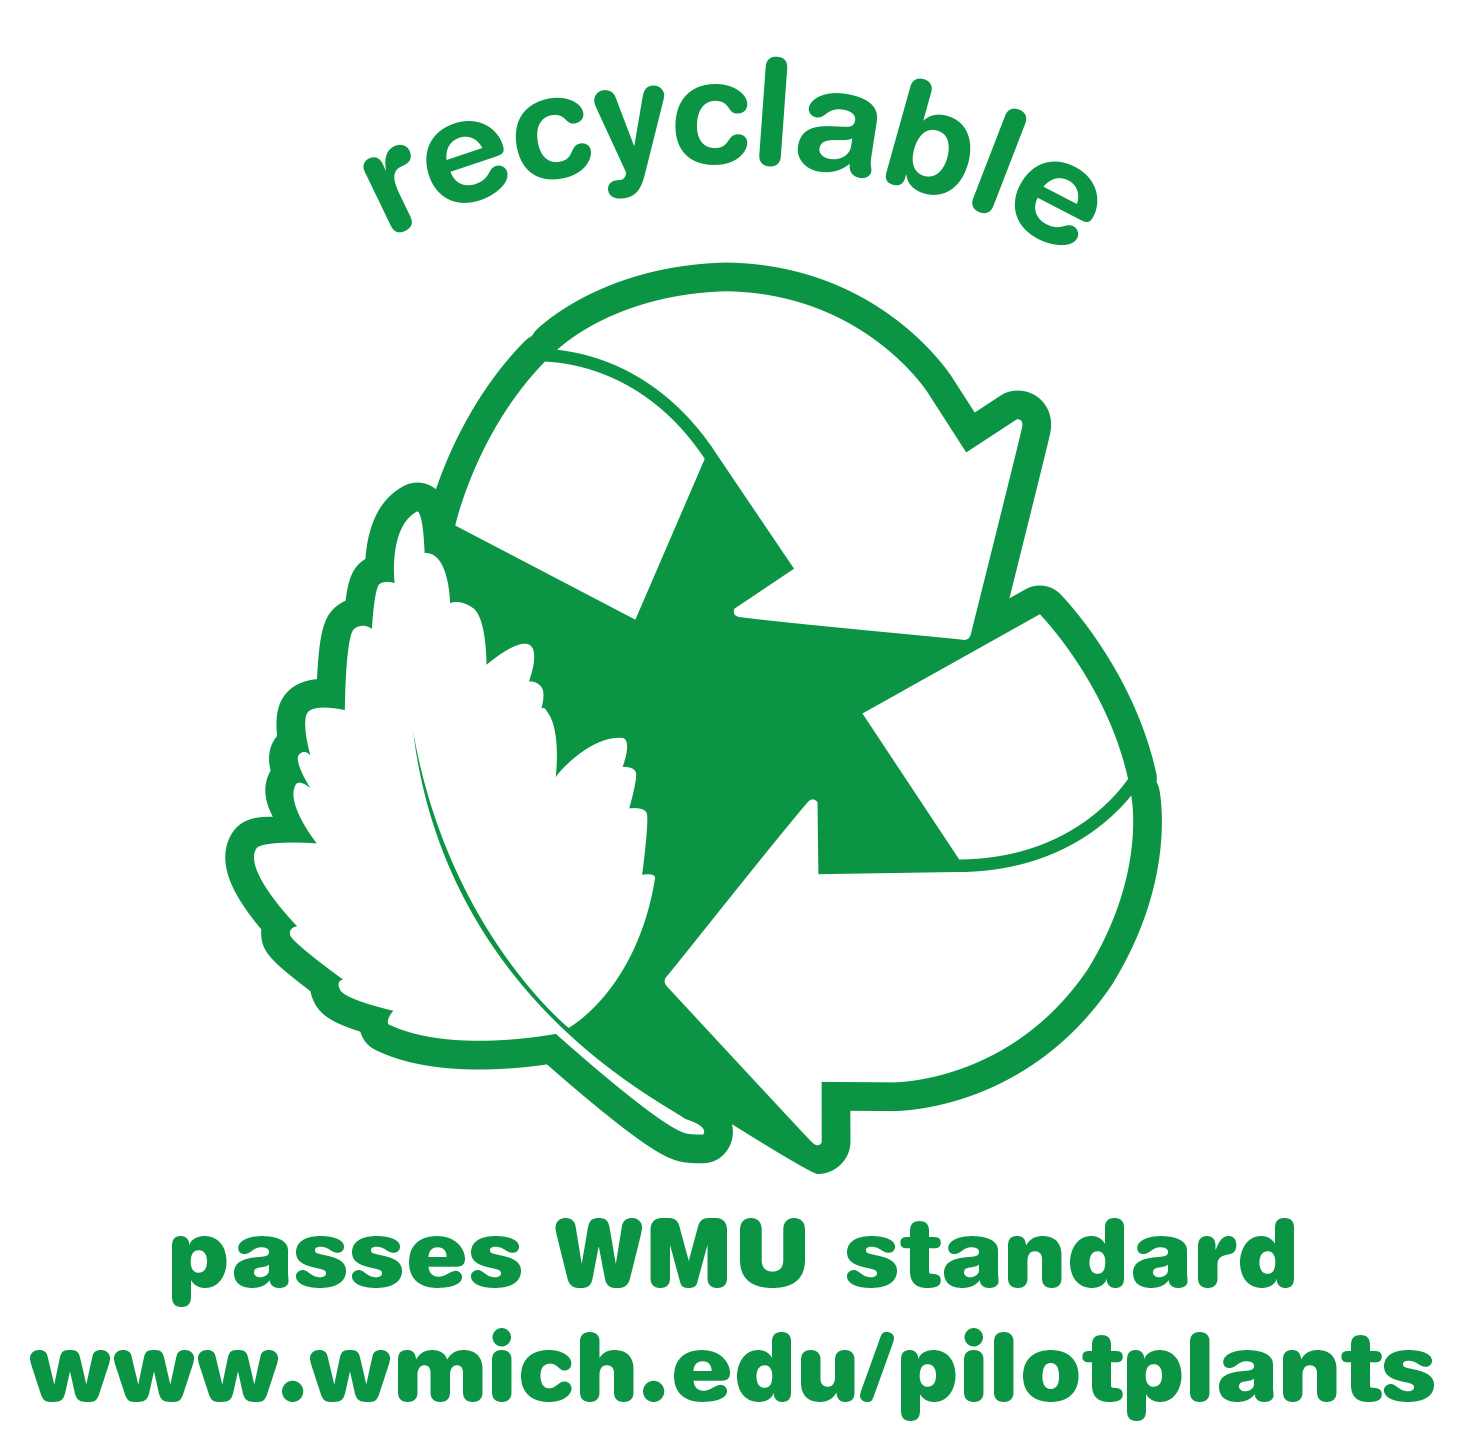 WMU Recyclable